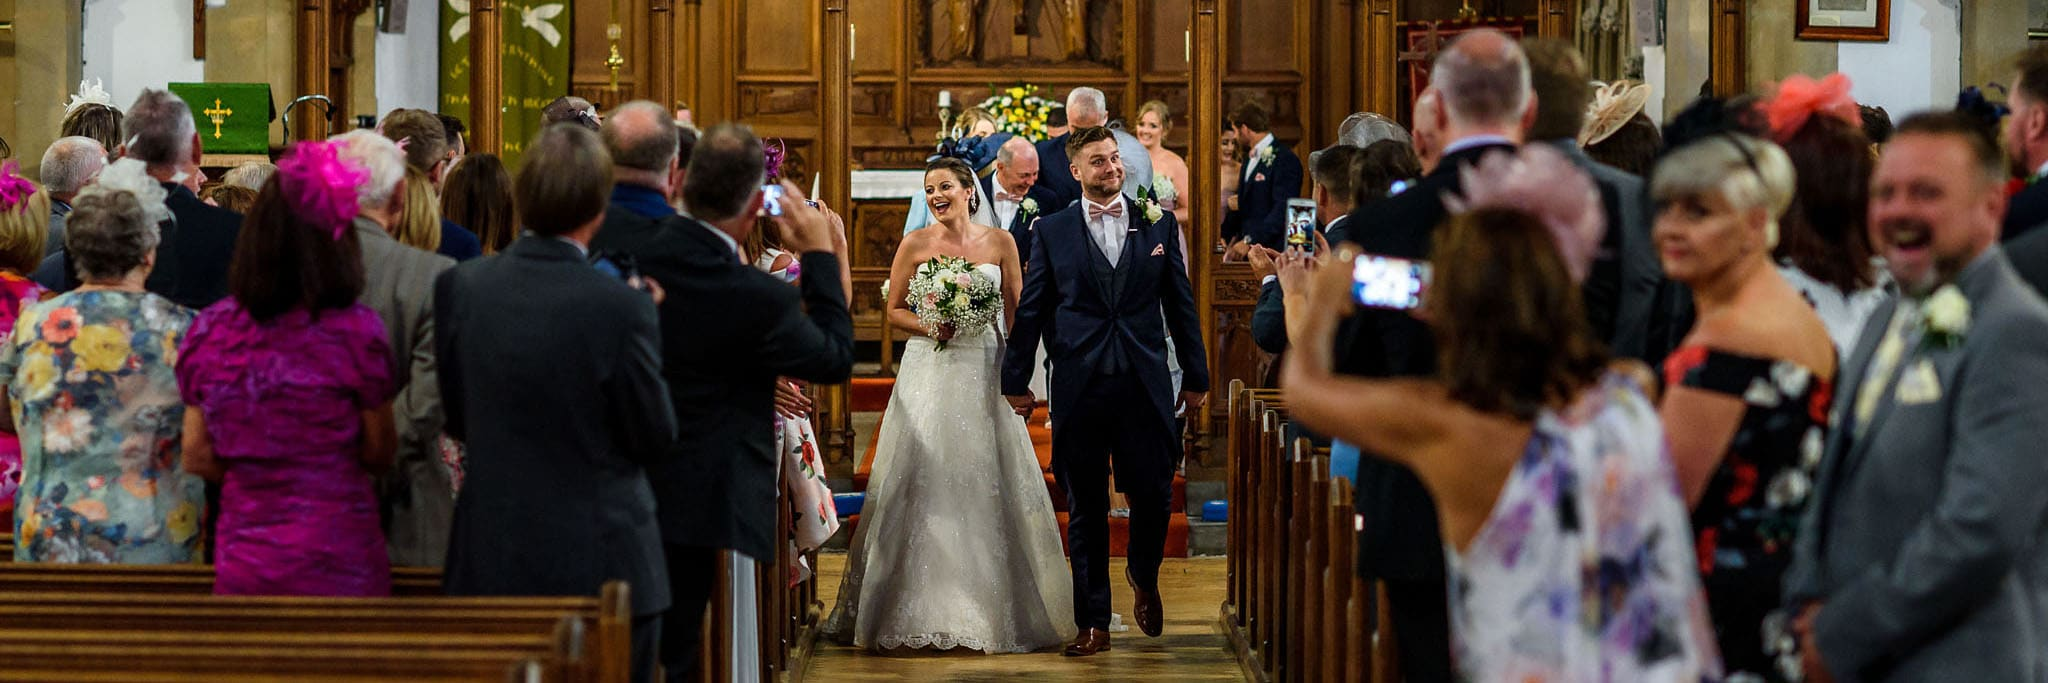 the happy couple walking back down the aisle